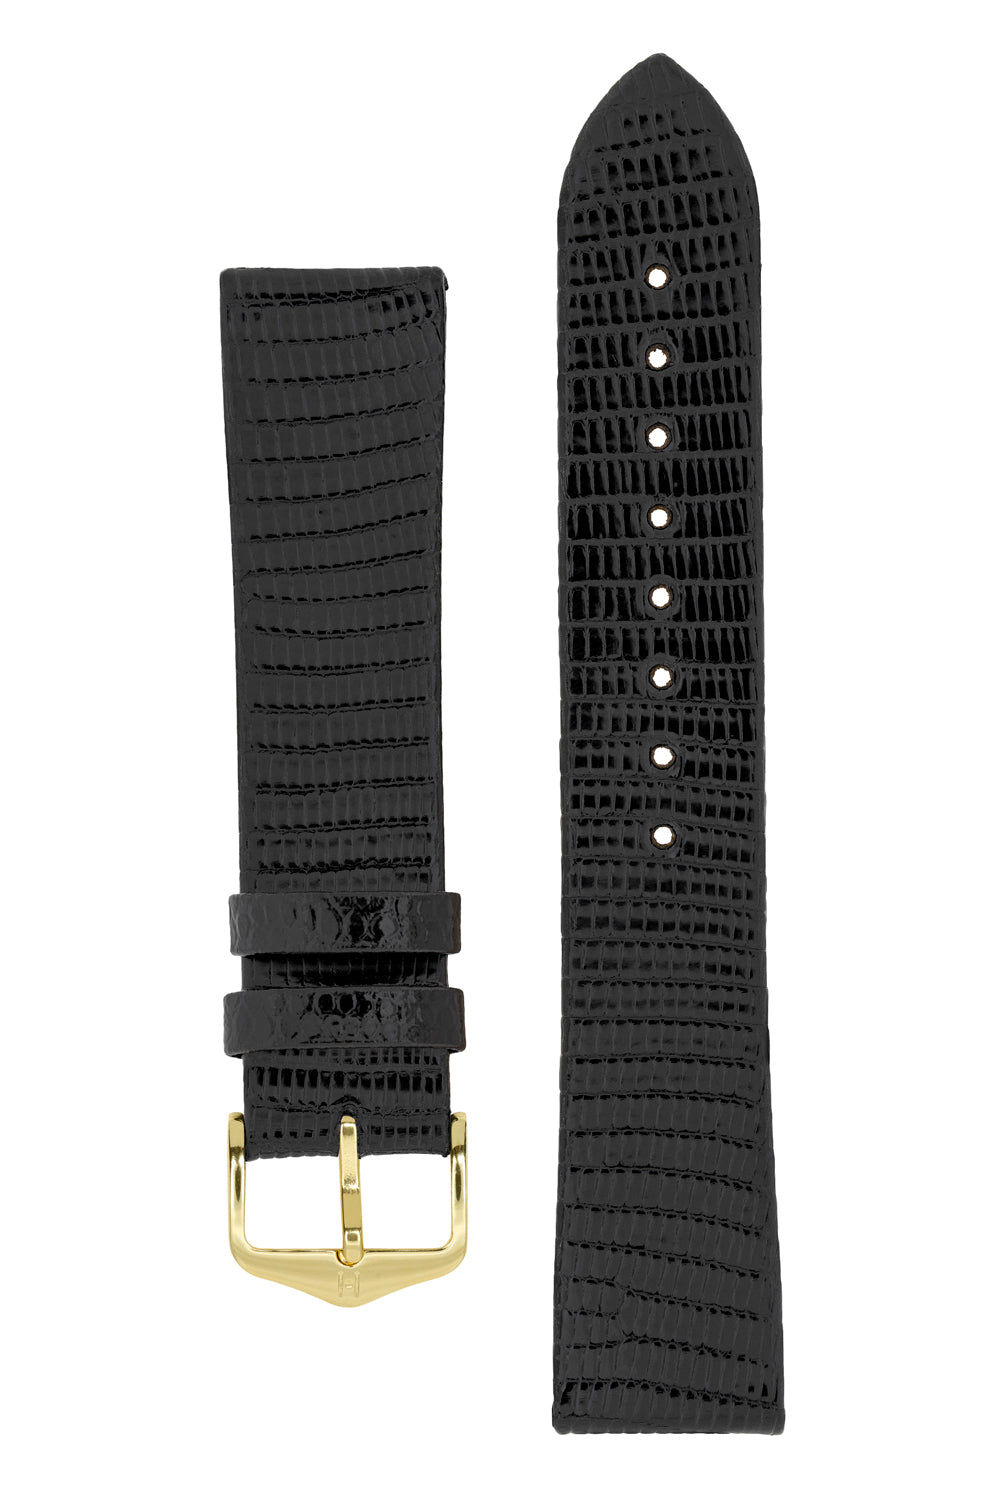 Hirsch LIZARD Leather Watch Strap in BLACK